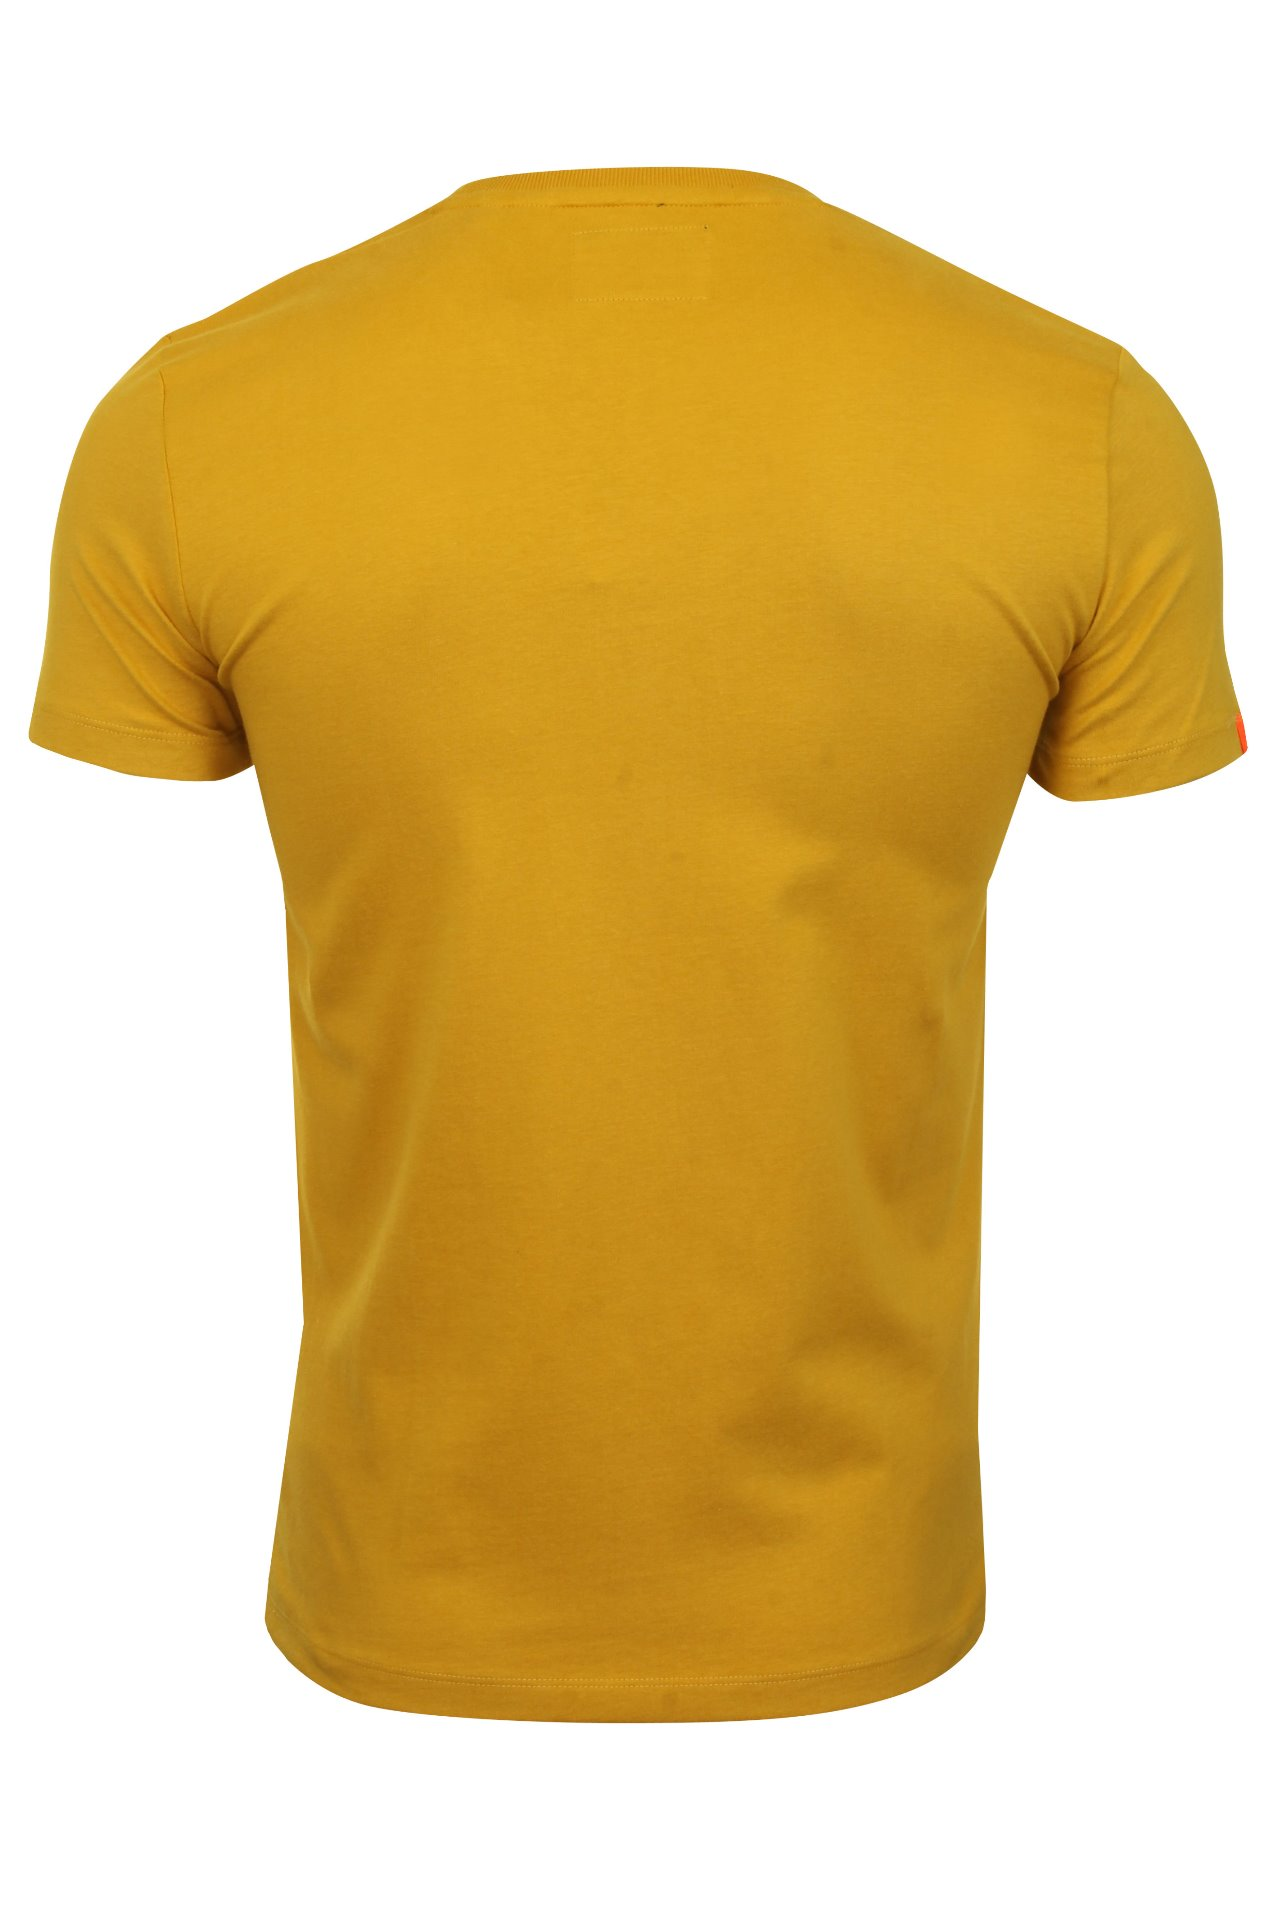 Superdry-Mens-T-Shirt-039-OL-Vintage-Embroidery-Tee-039-Short-Sleeved thumbnail 17